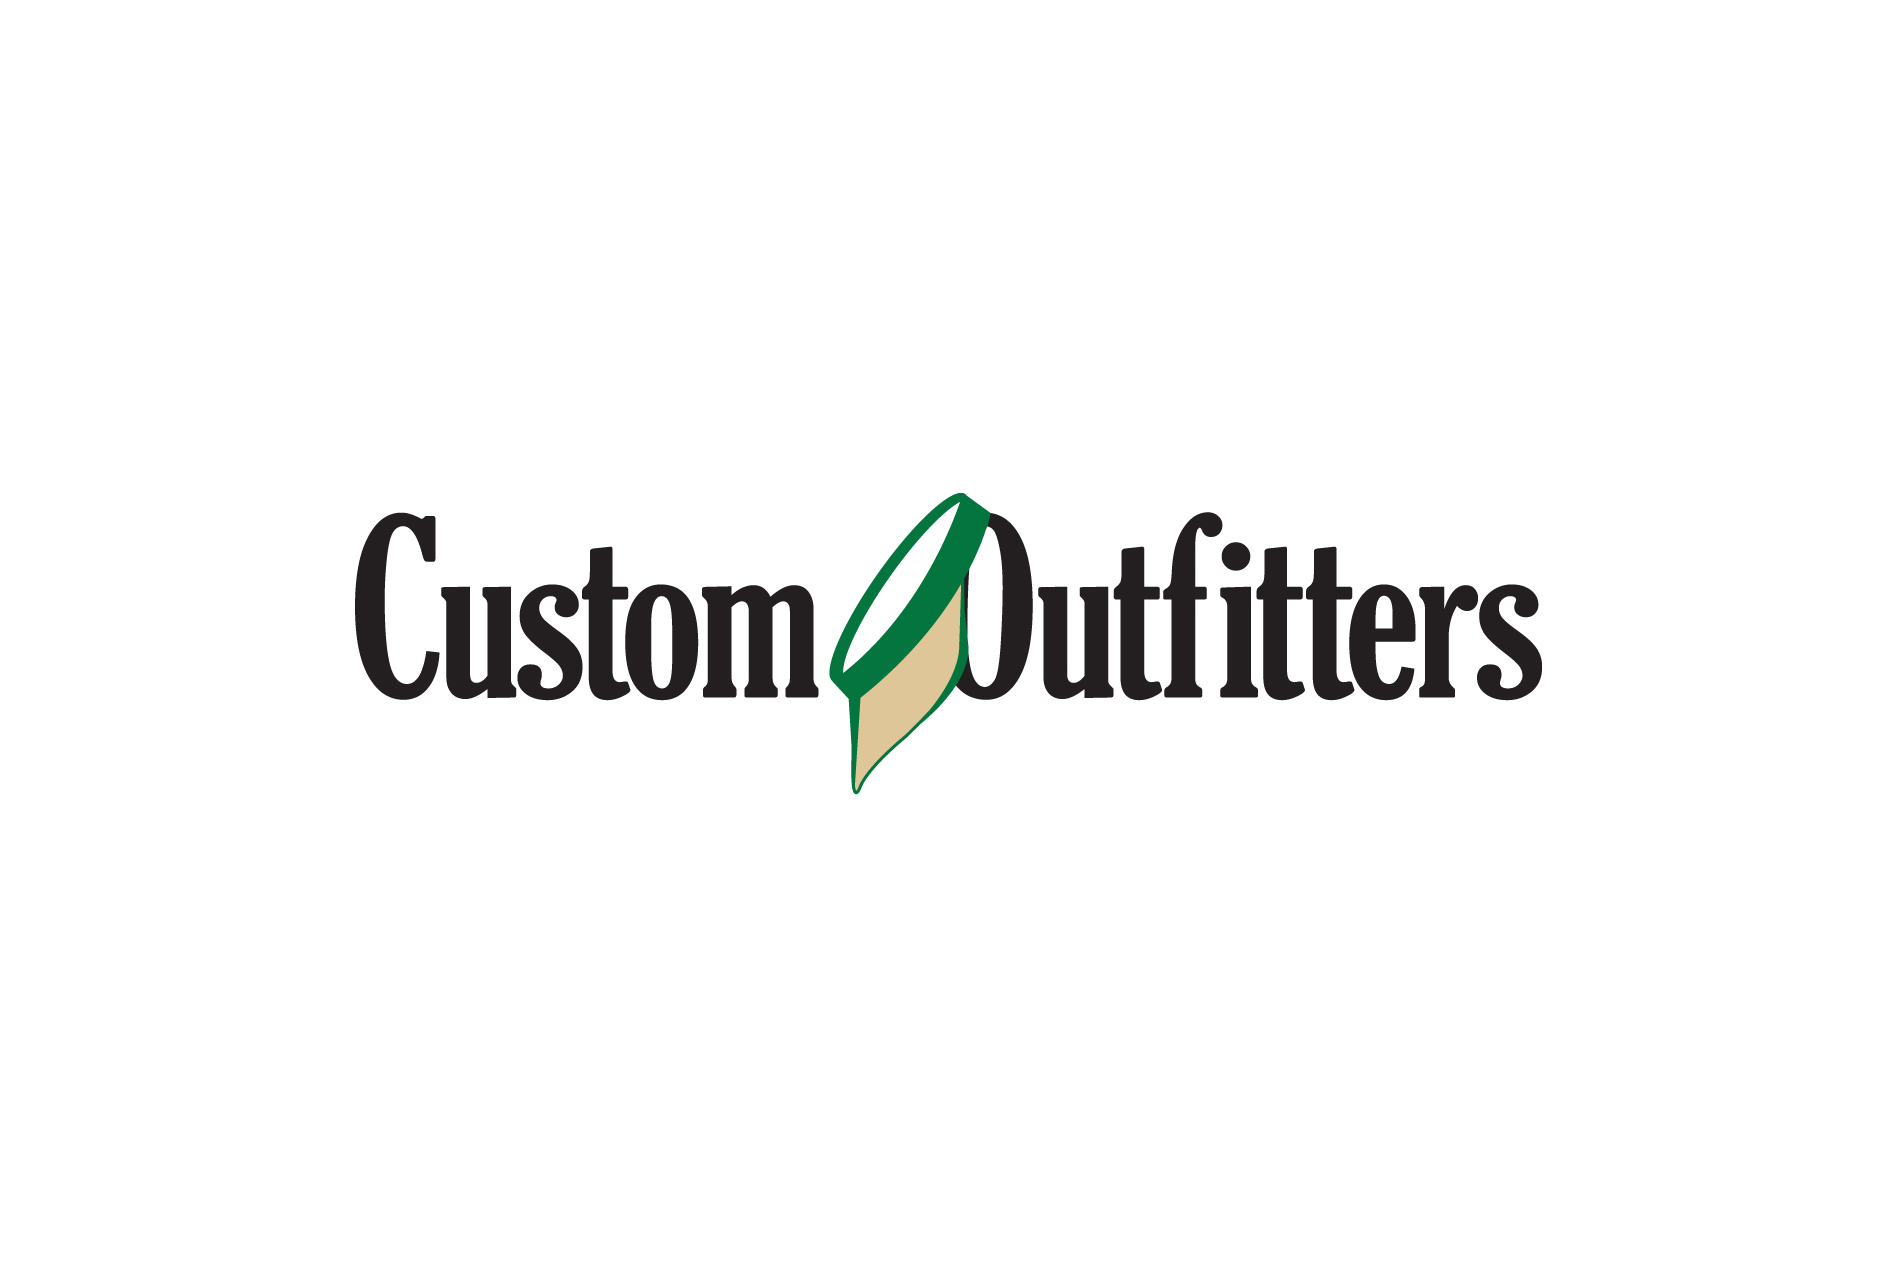 Custom Outfitters Logo